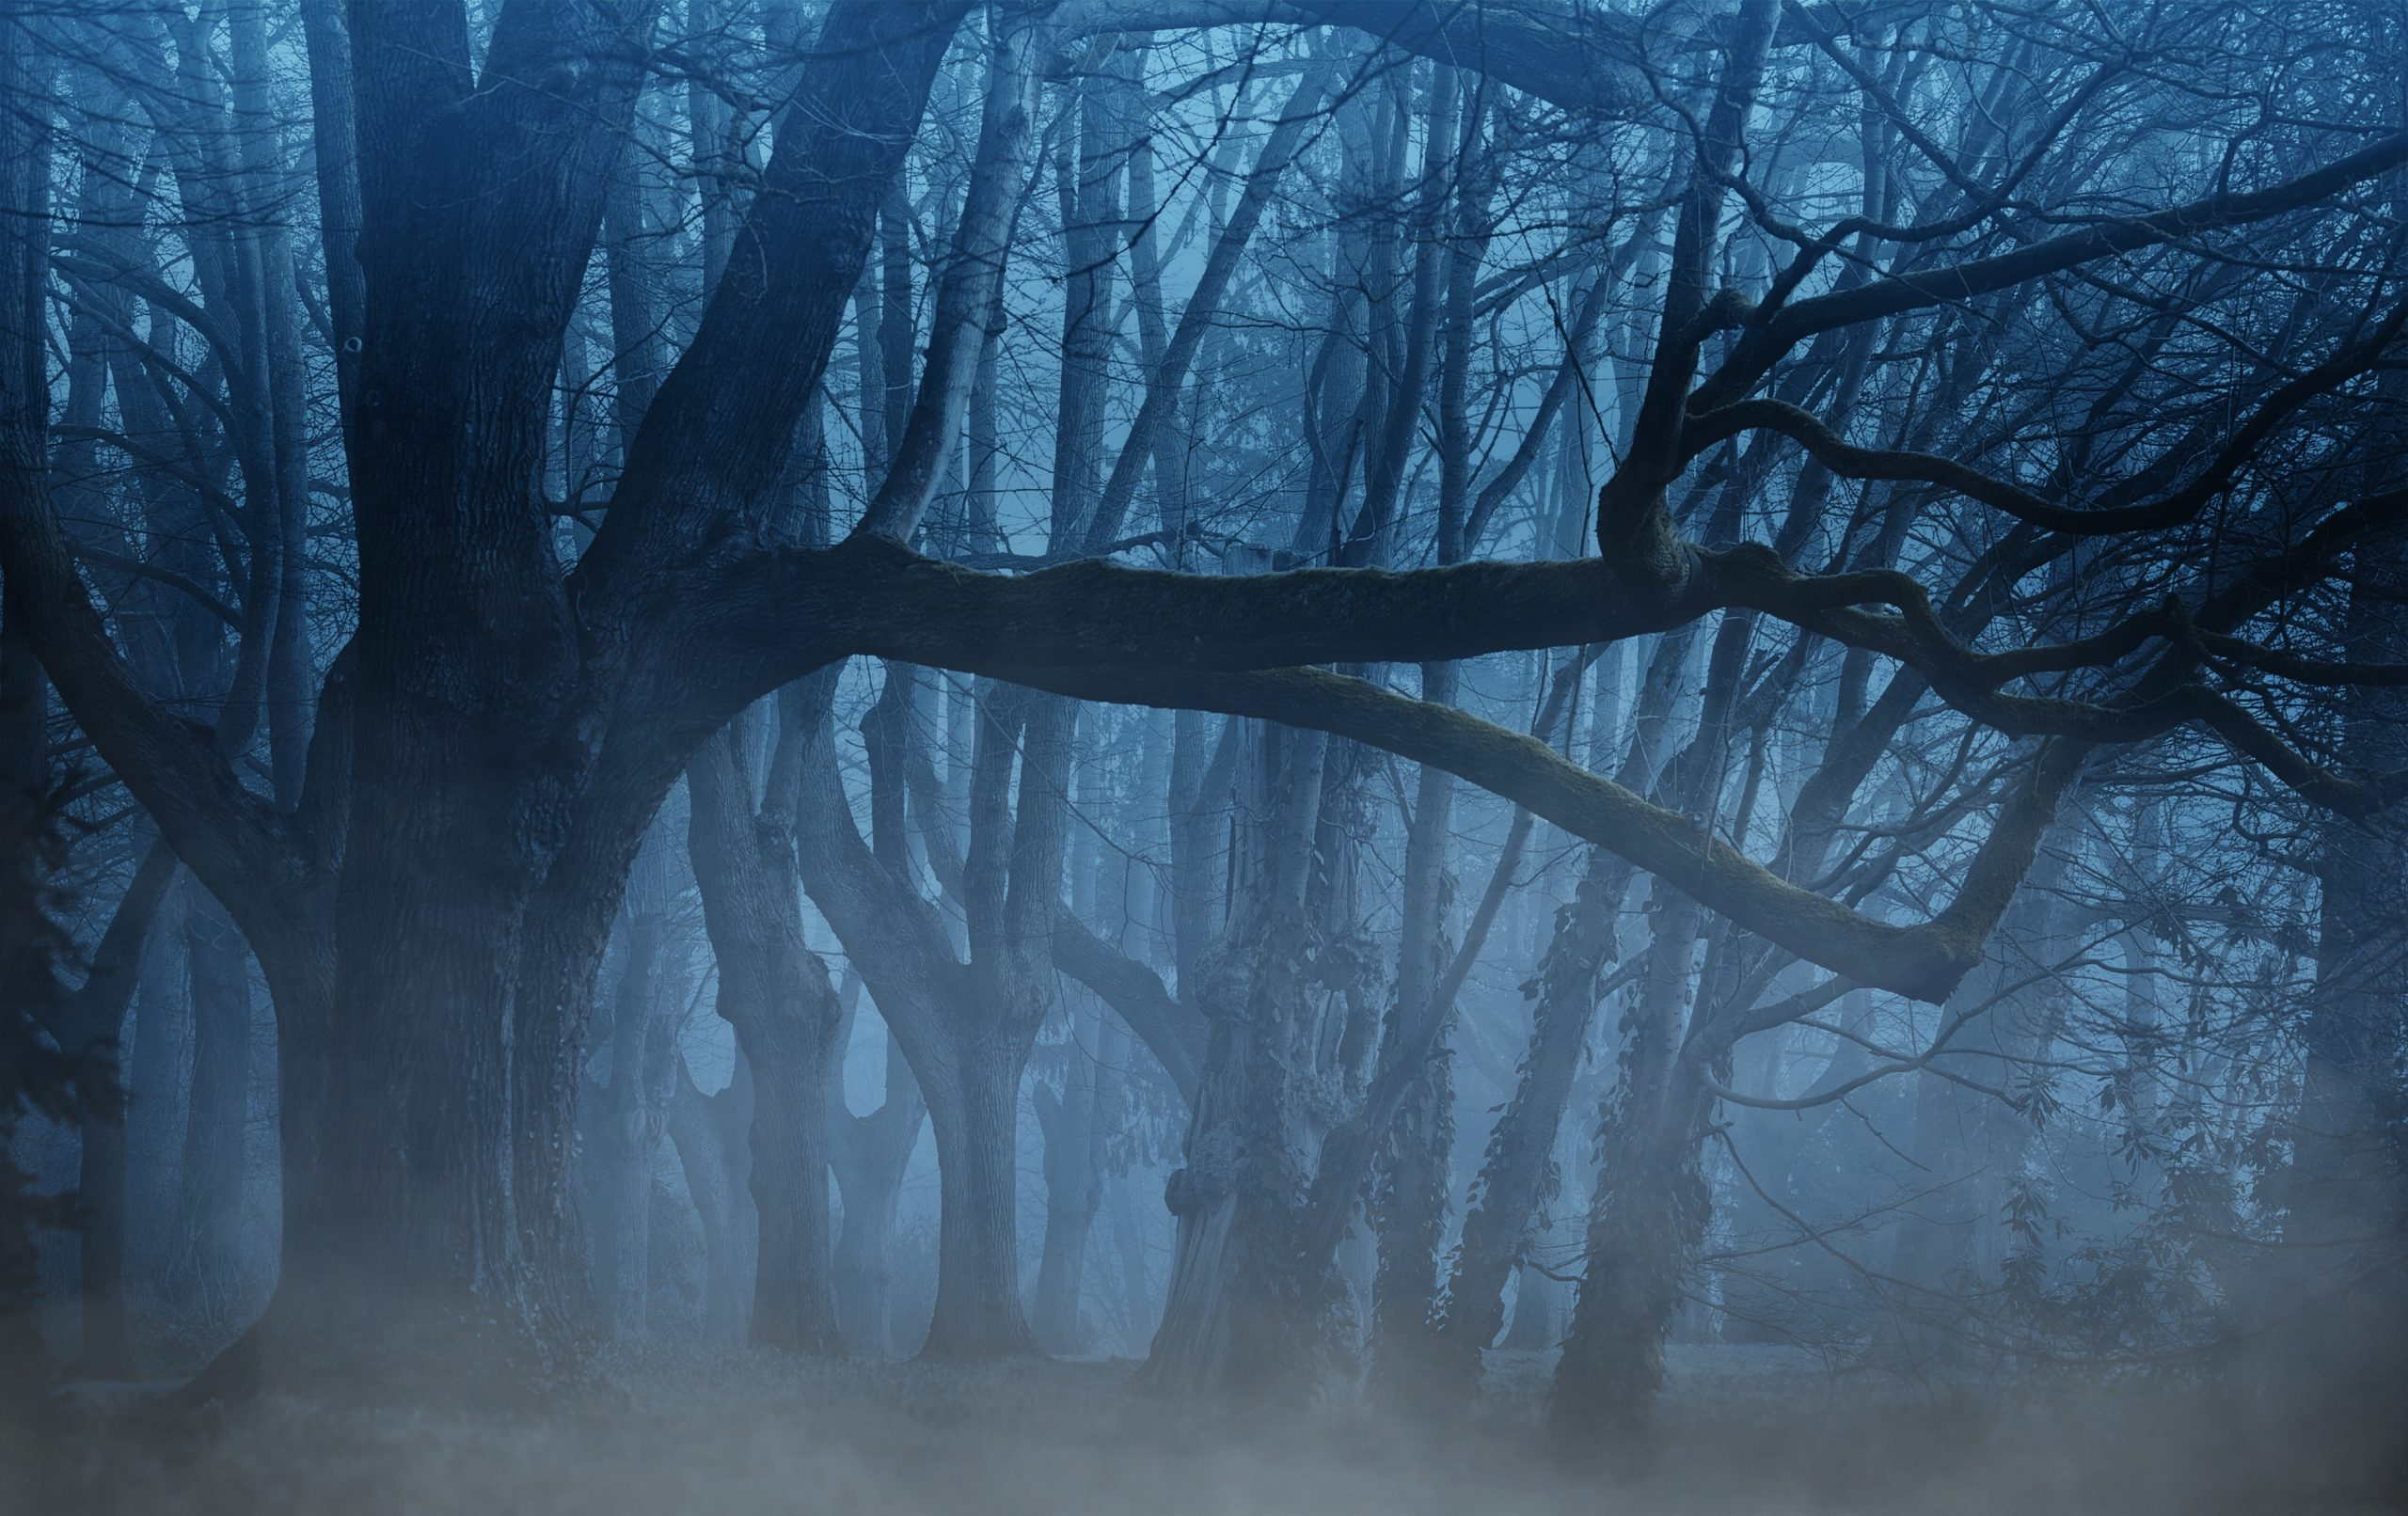 Image by DarkWorkX from Pixabay